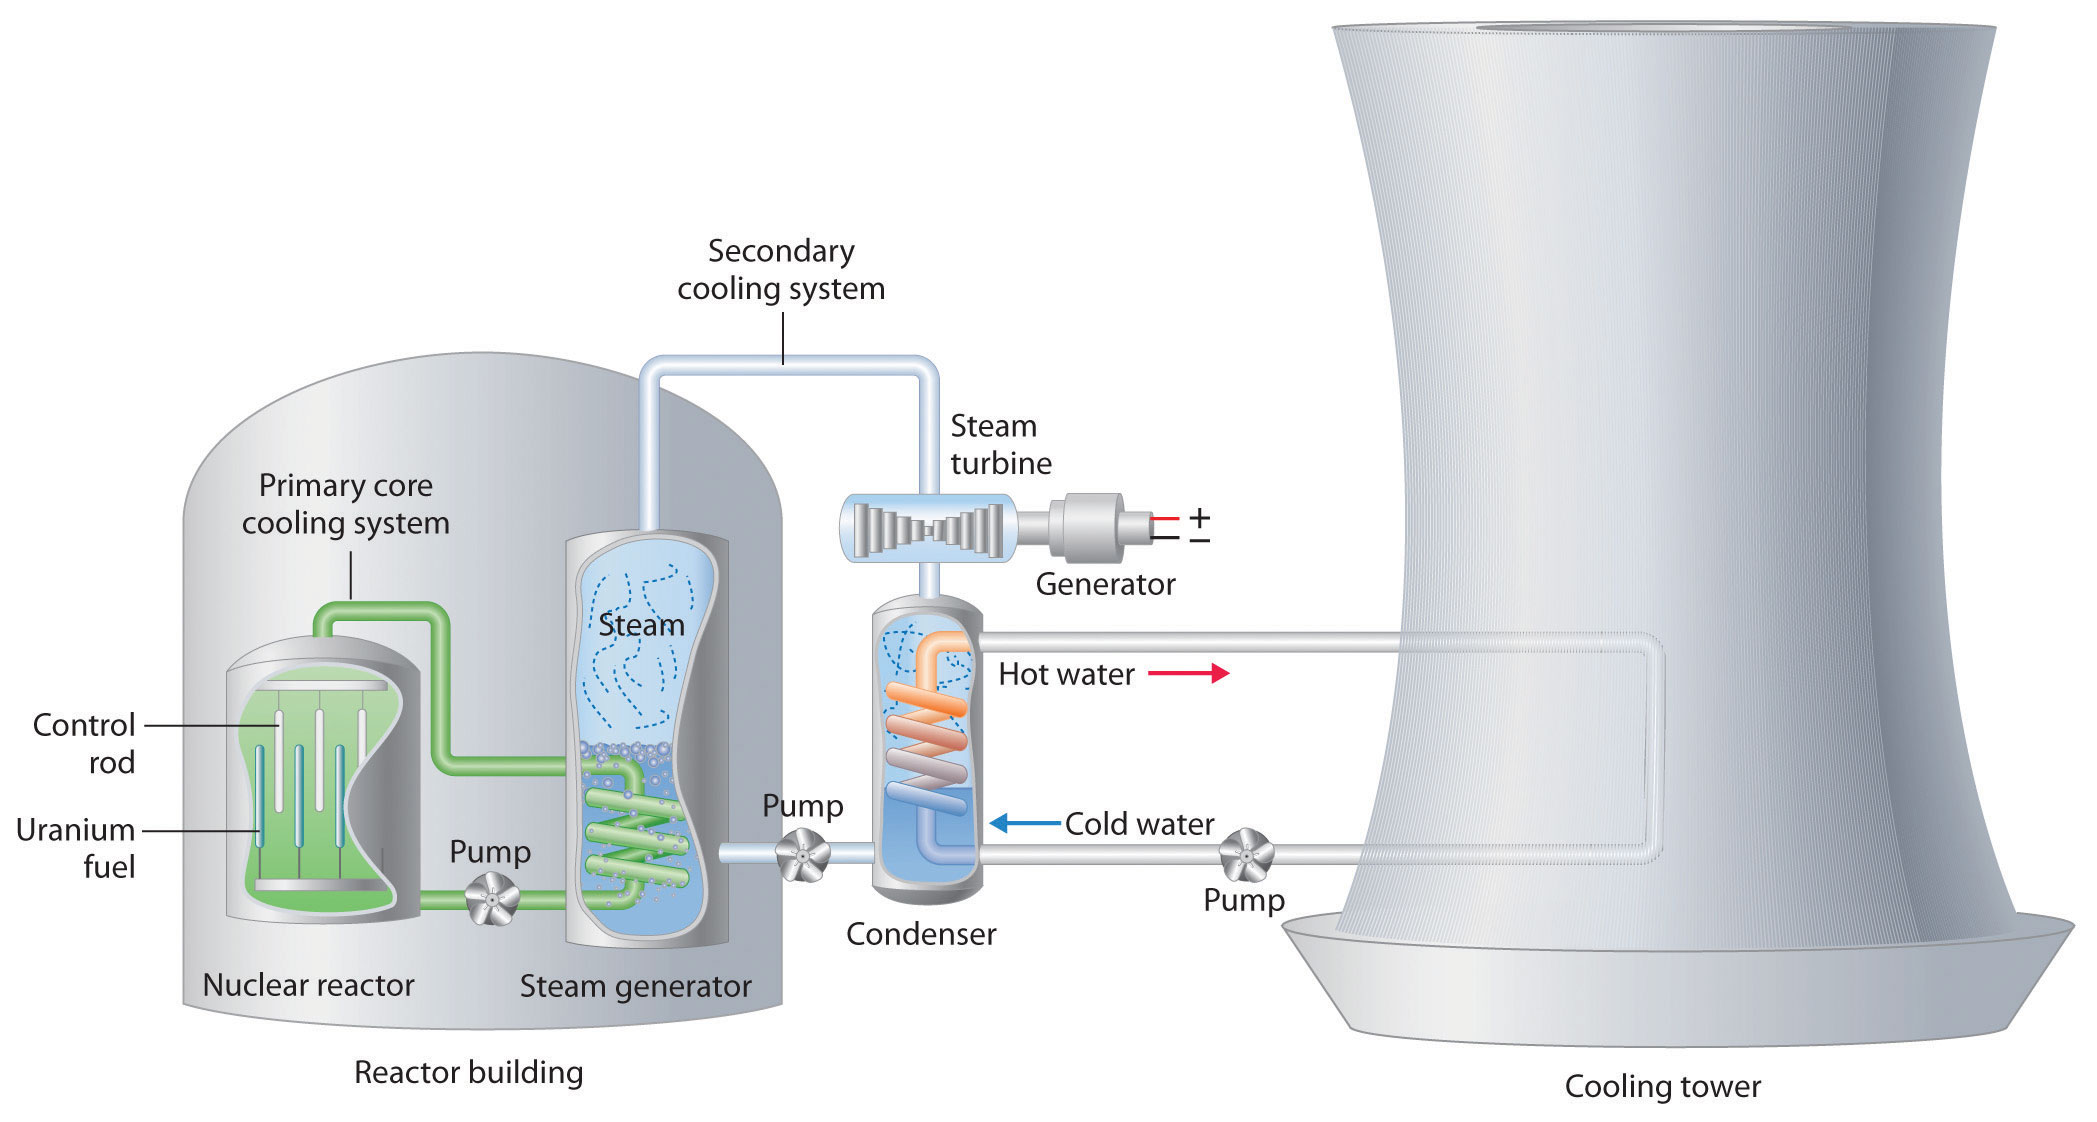 Diagram moreover Forced Air Furnace Diagram. on water cooling diagram #C25109